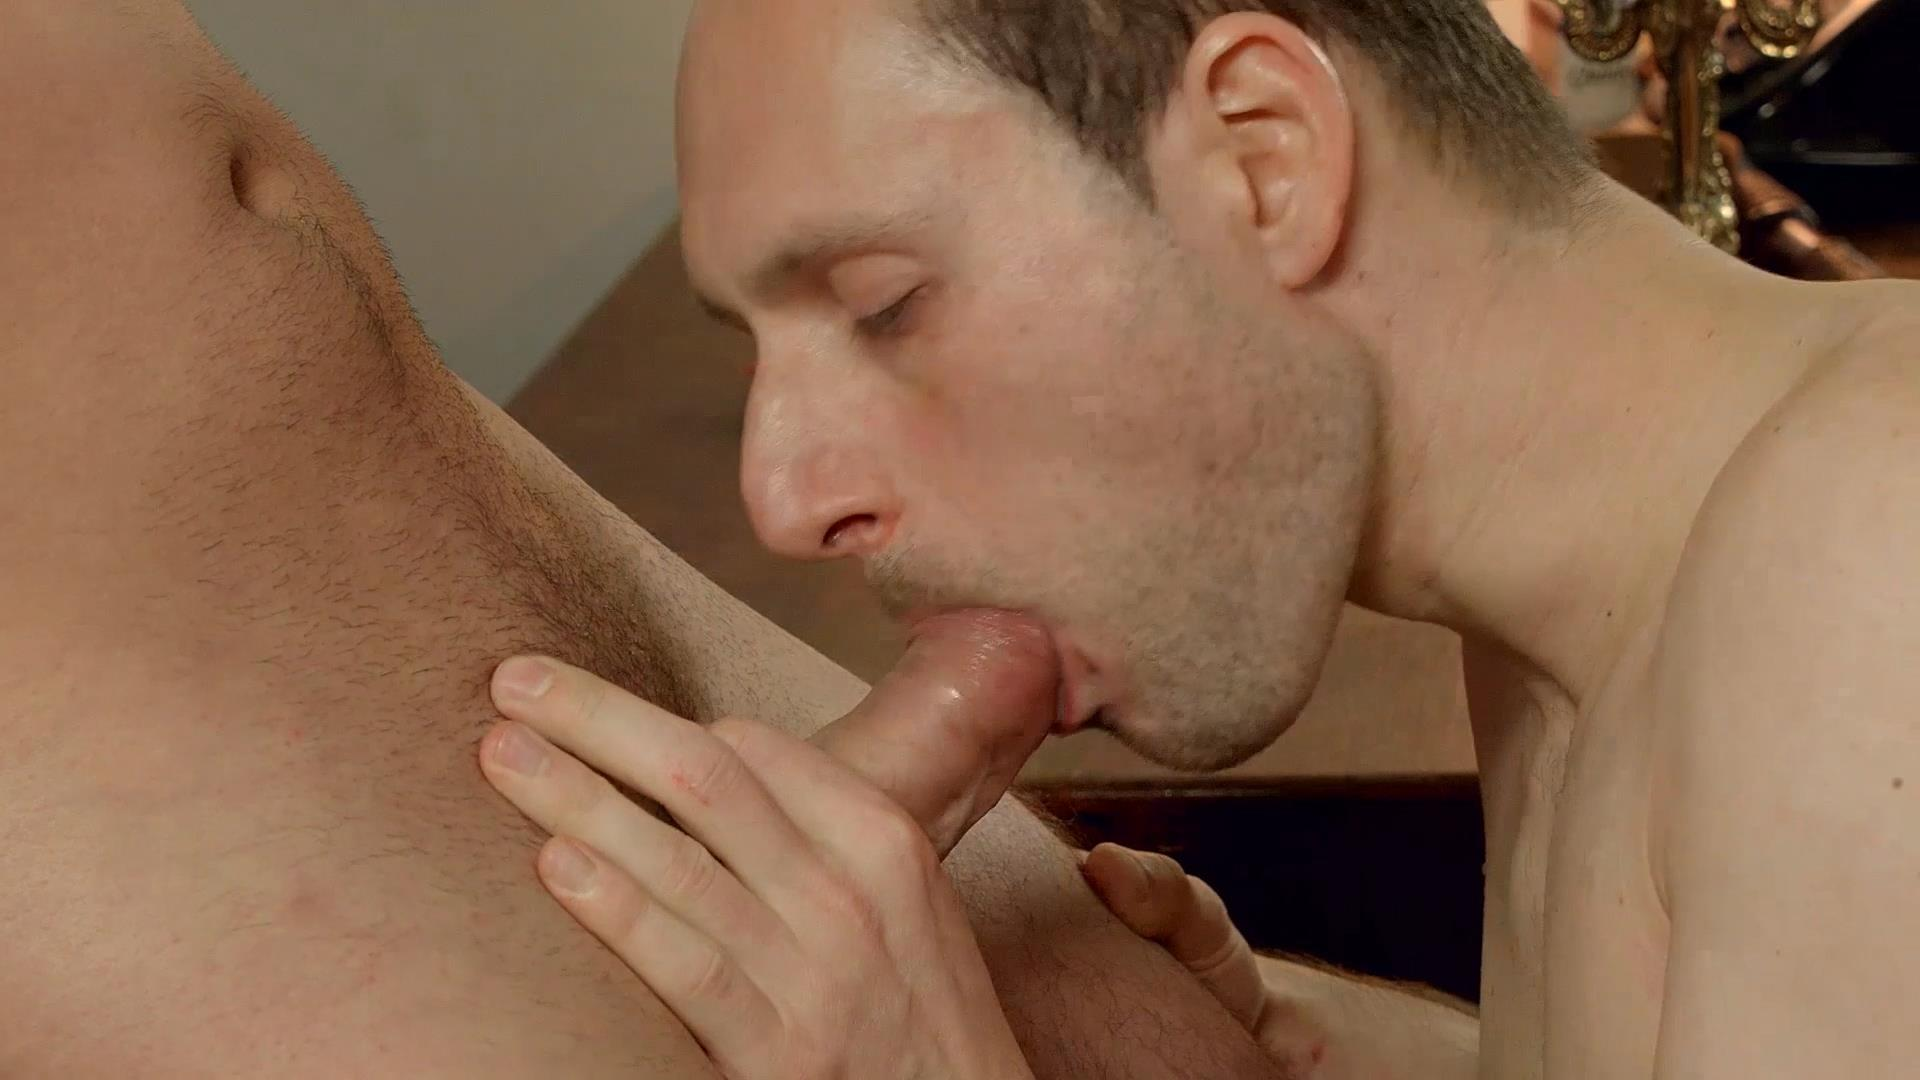 Bareback Me Daddy Oscar Hart Priest Fucks Bareback Amateur Gay Porn 09 College Boy Gets Fucked Bareback By An Older Priest With A Big Uncut Cock